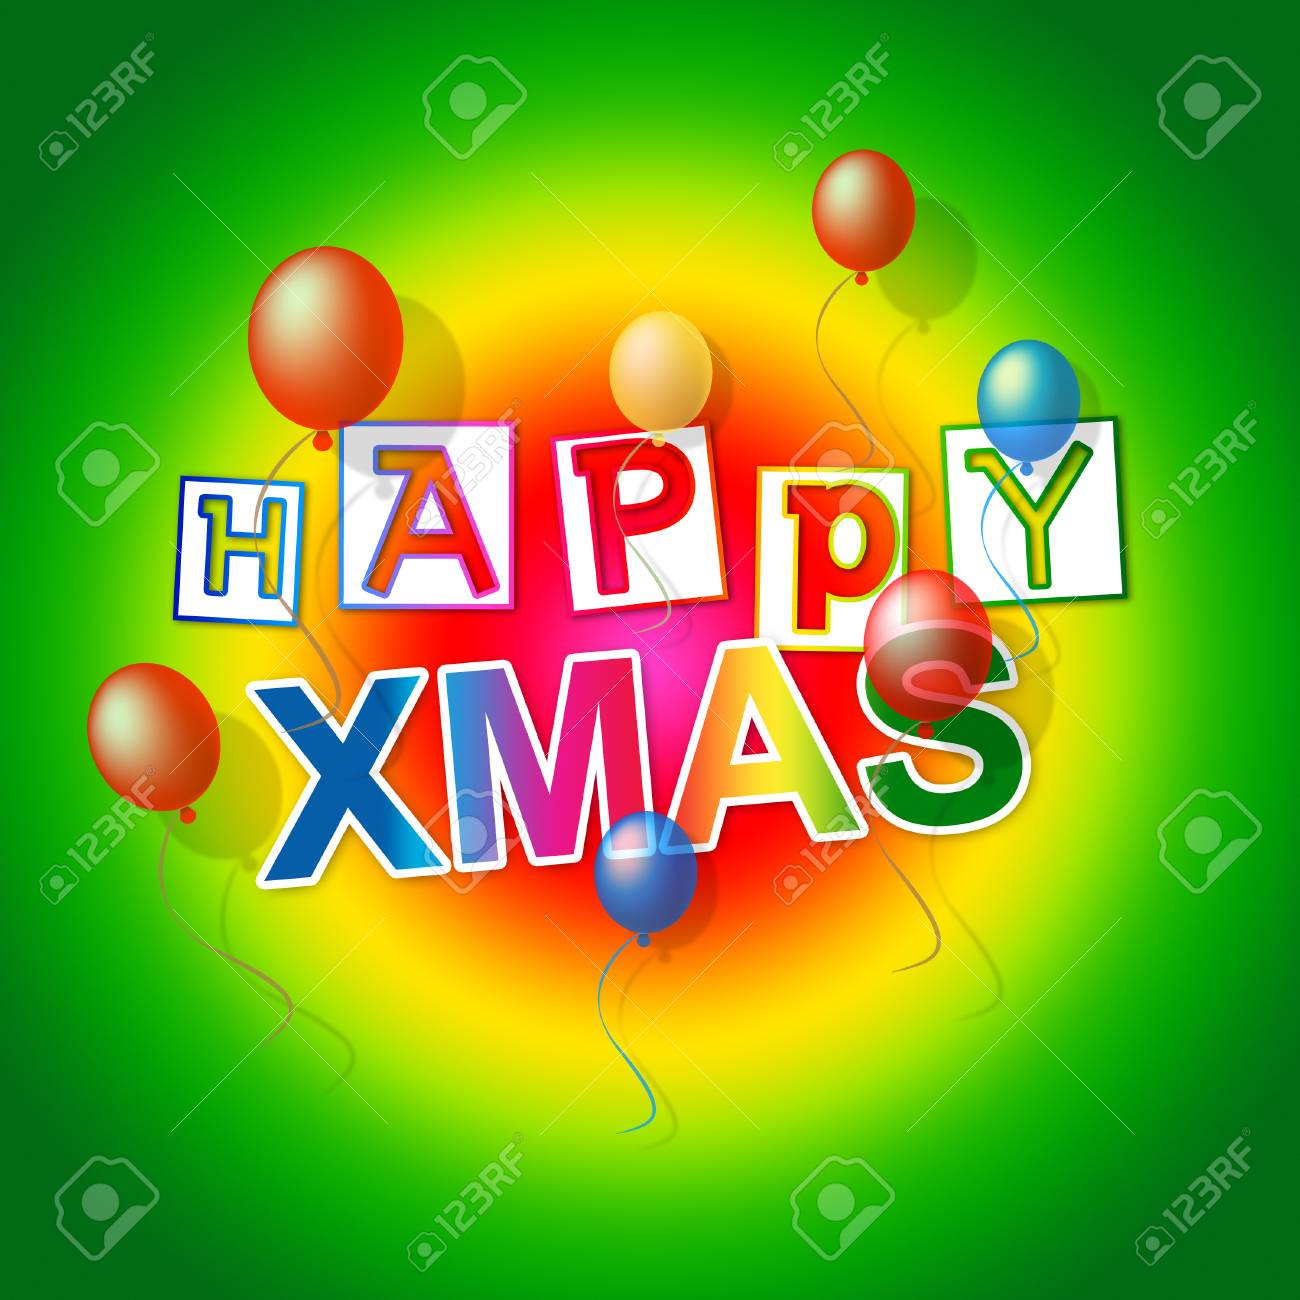 Christmas Meaning.Happy Xmas Meaning Merry Christmas And Festive